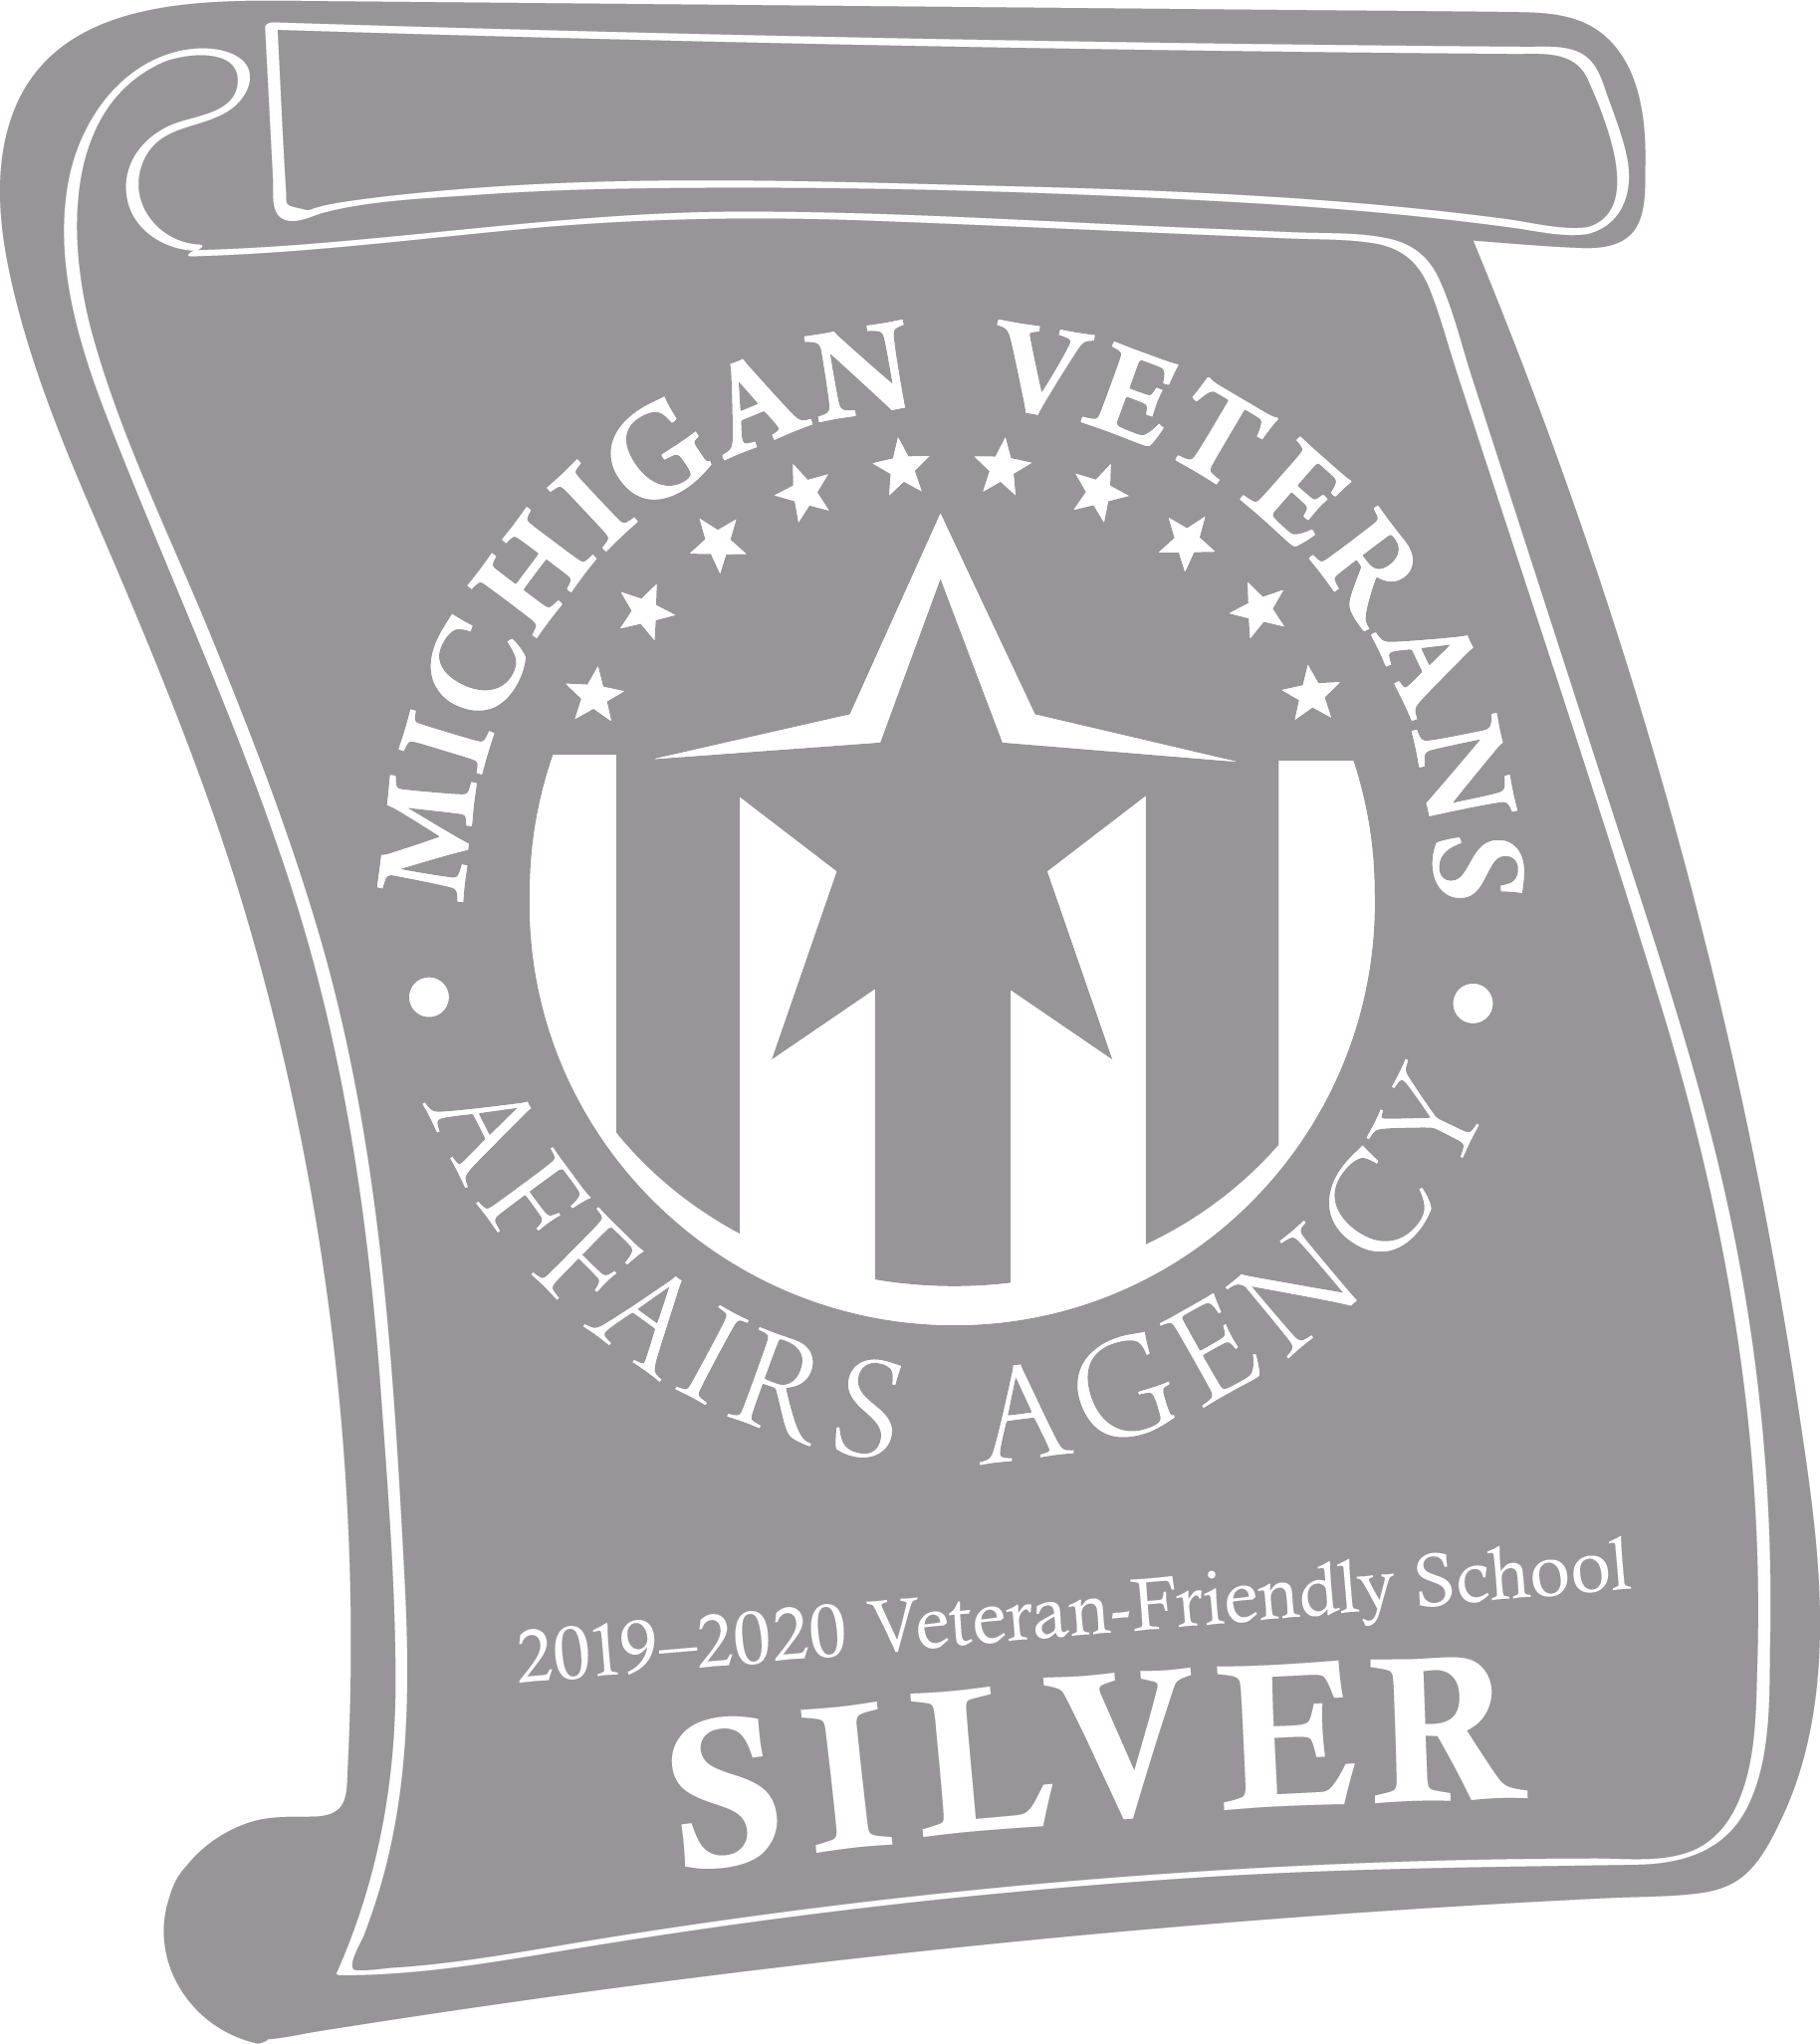 Michigan Veterans Affairs Agency Silver Certified School Seal of Approval